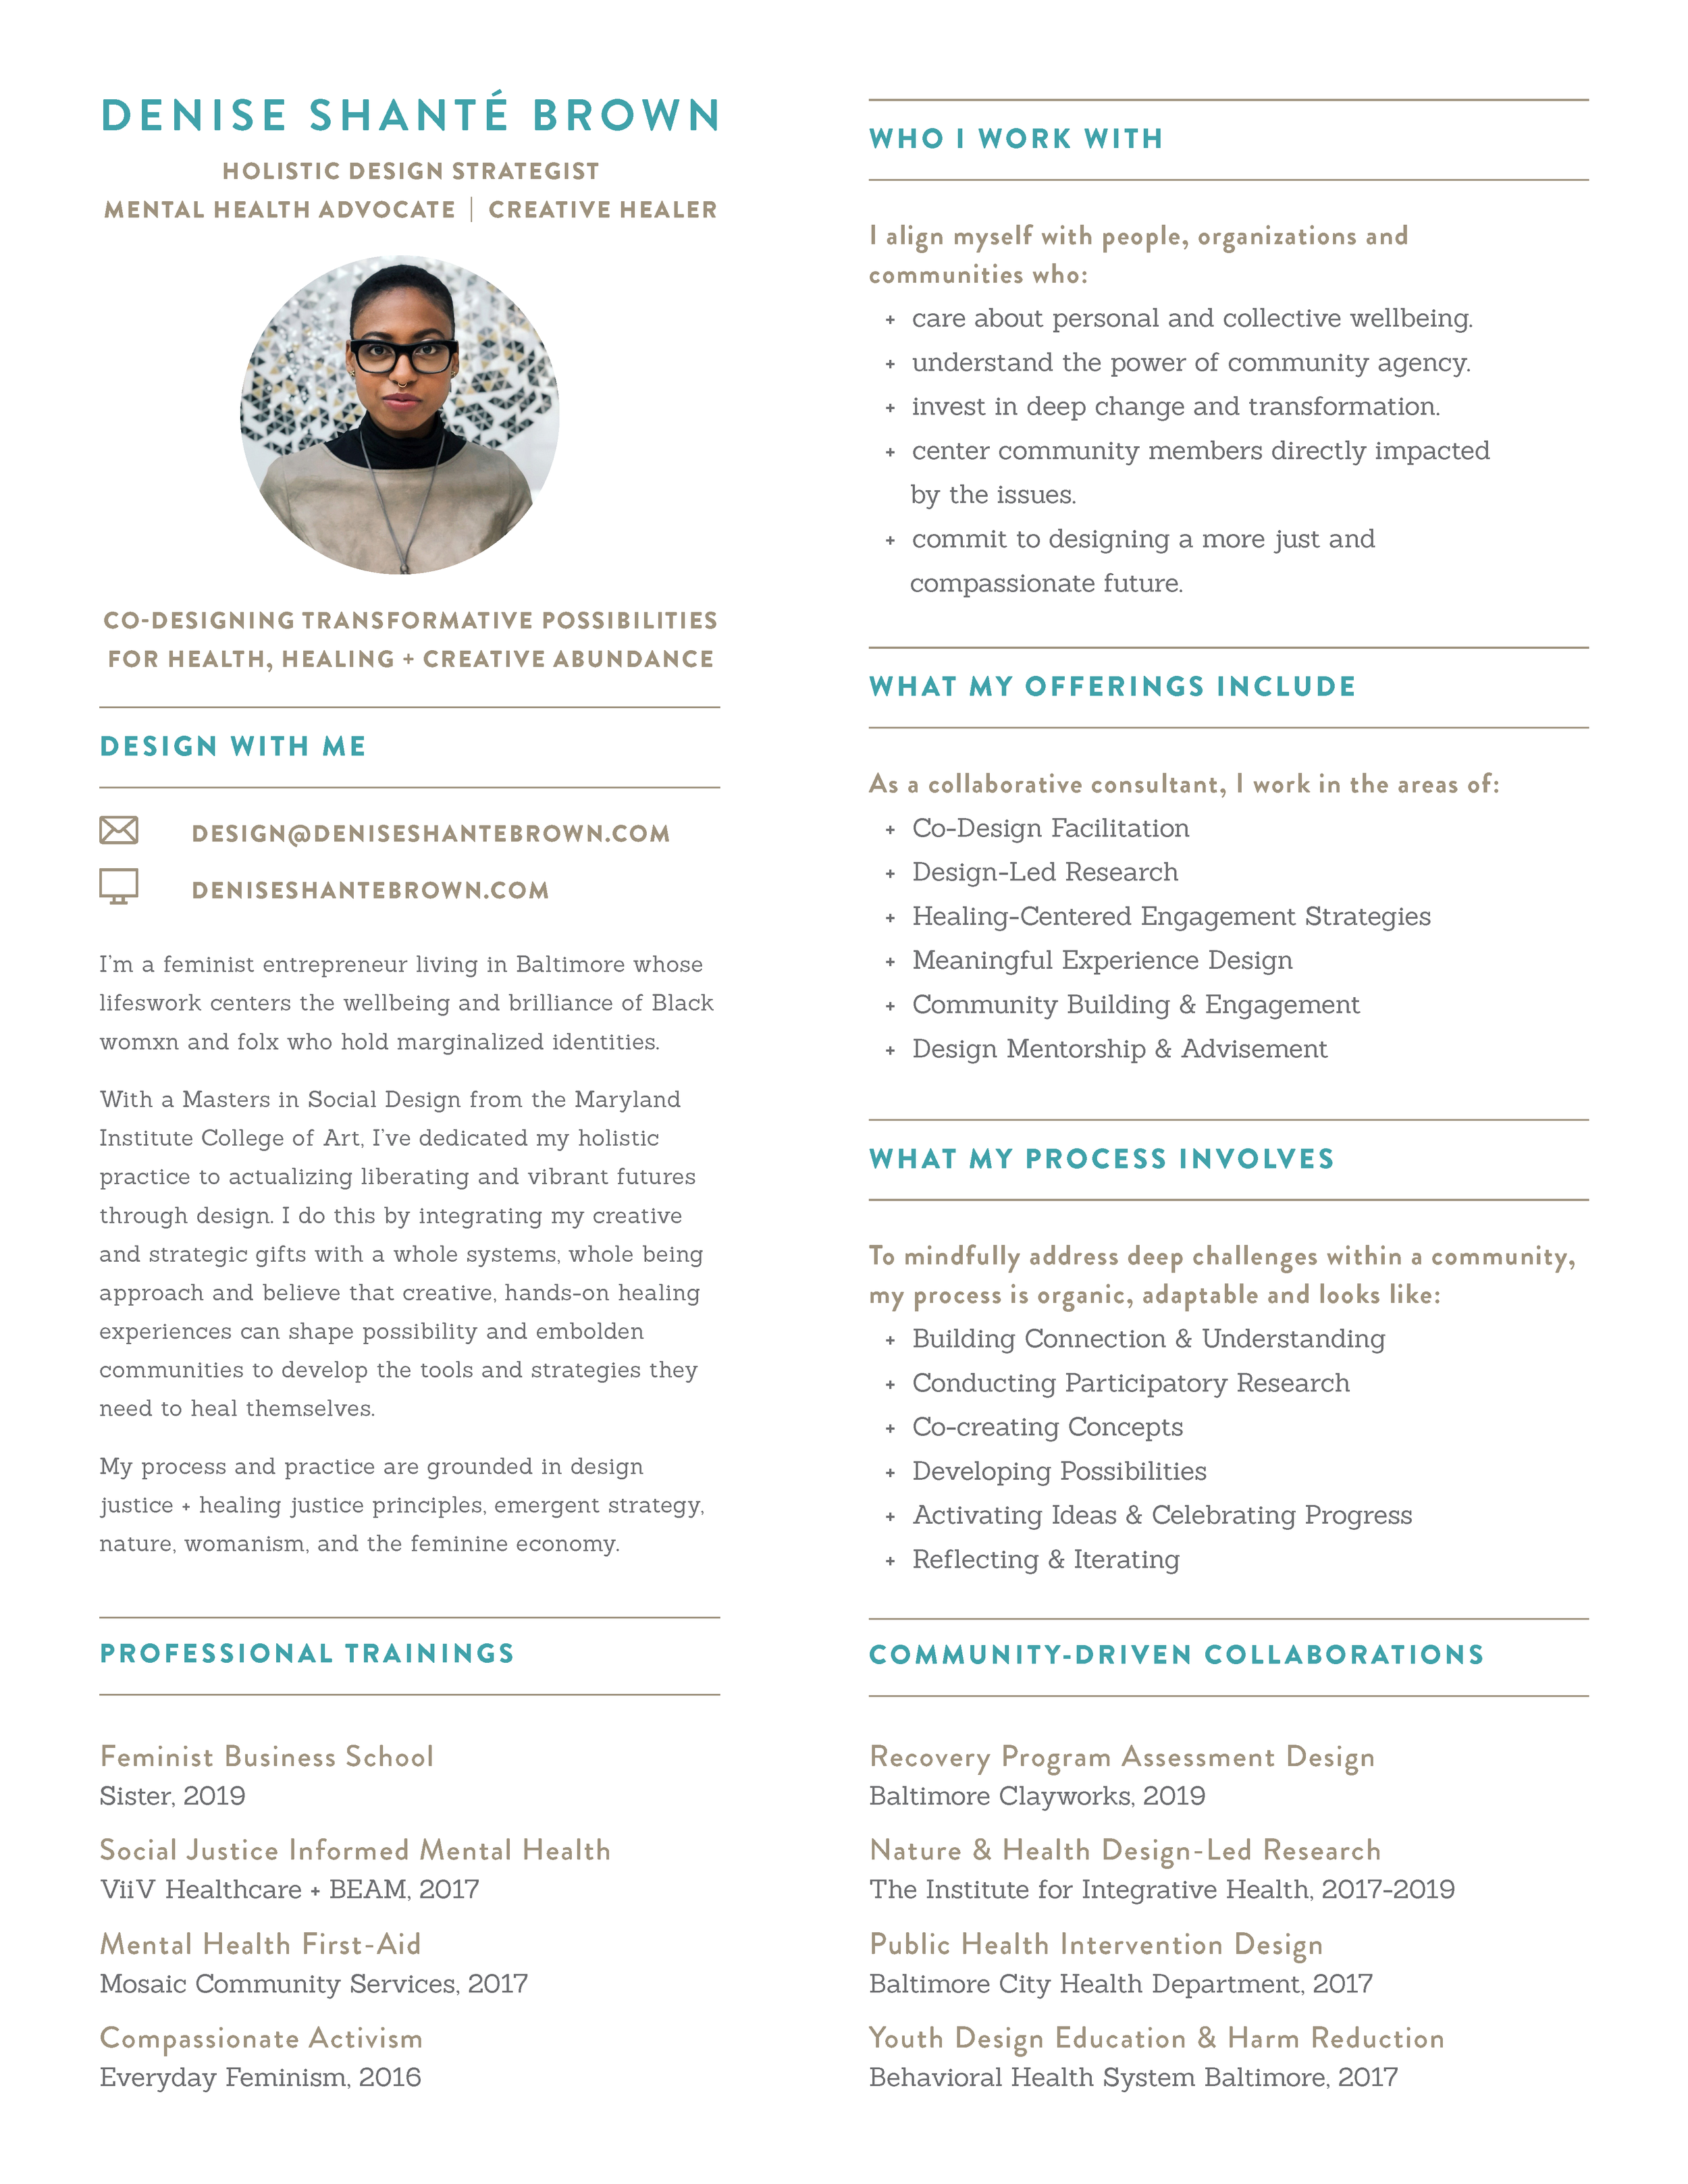 dsbrown_onepager2019.png